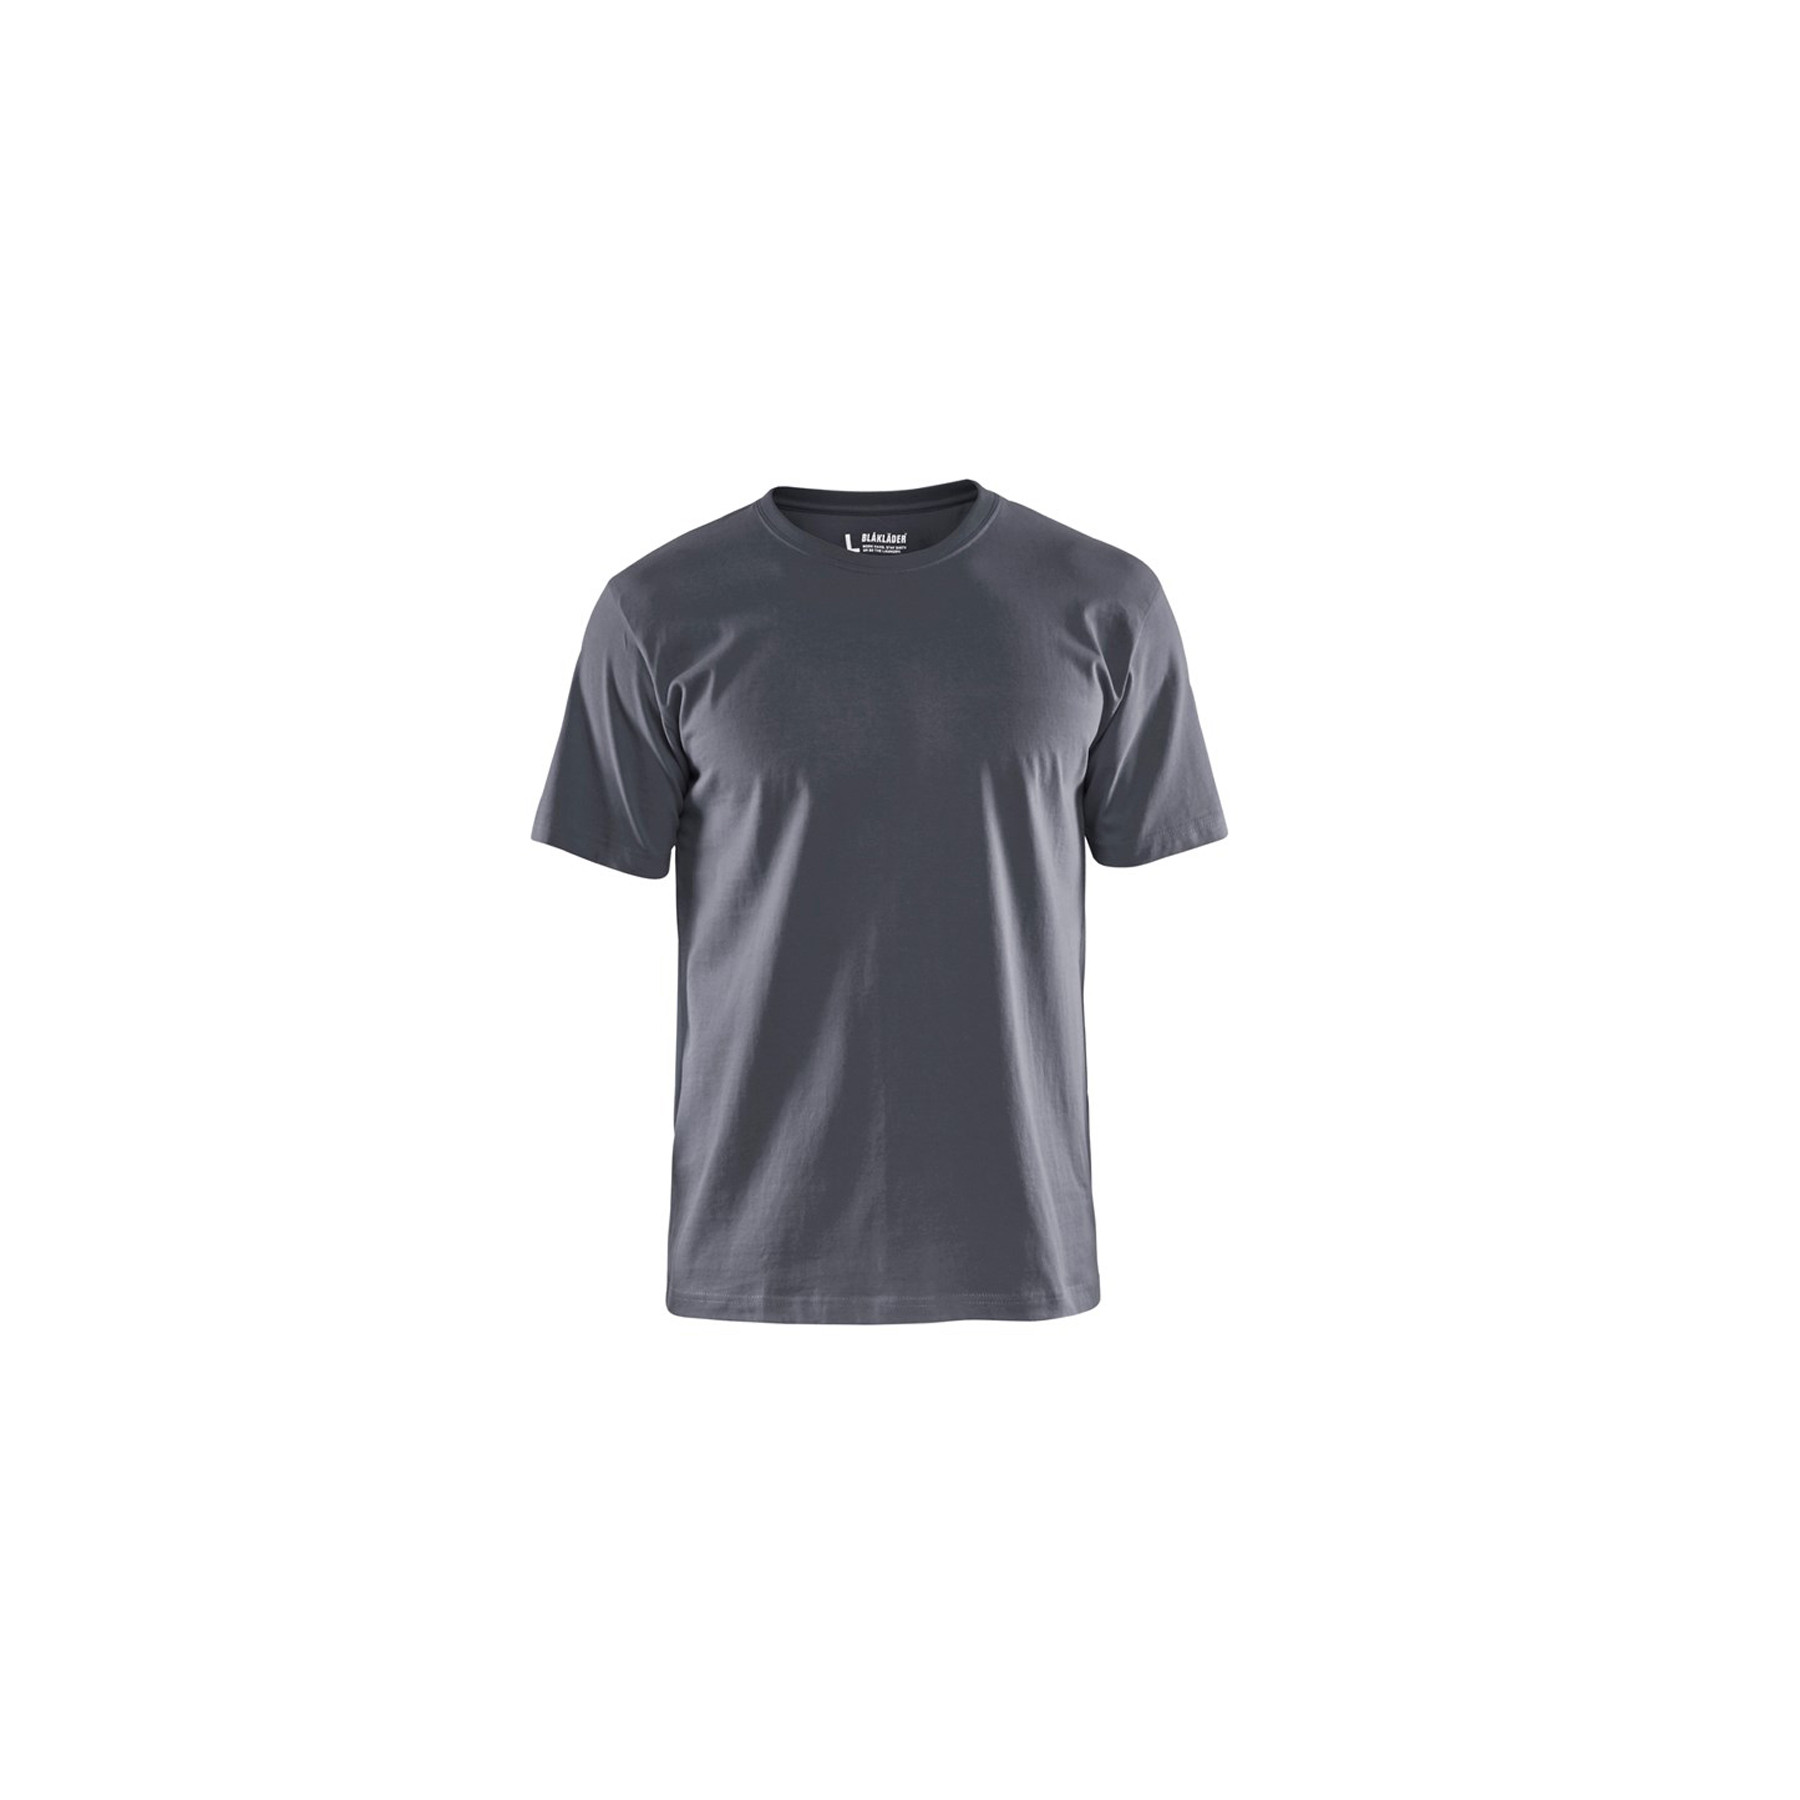 T-shirt Blaklader col rond Homme 100% coton - Gris